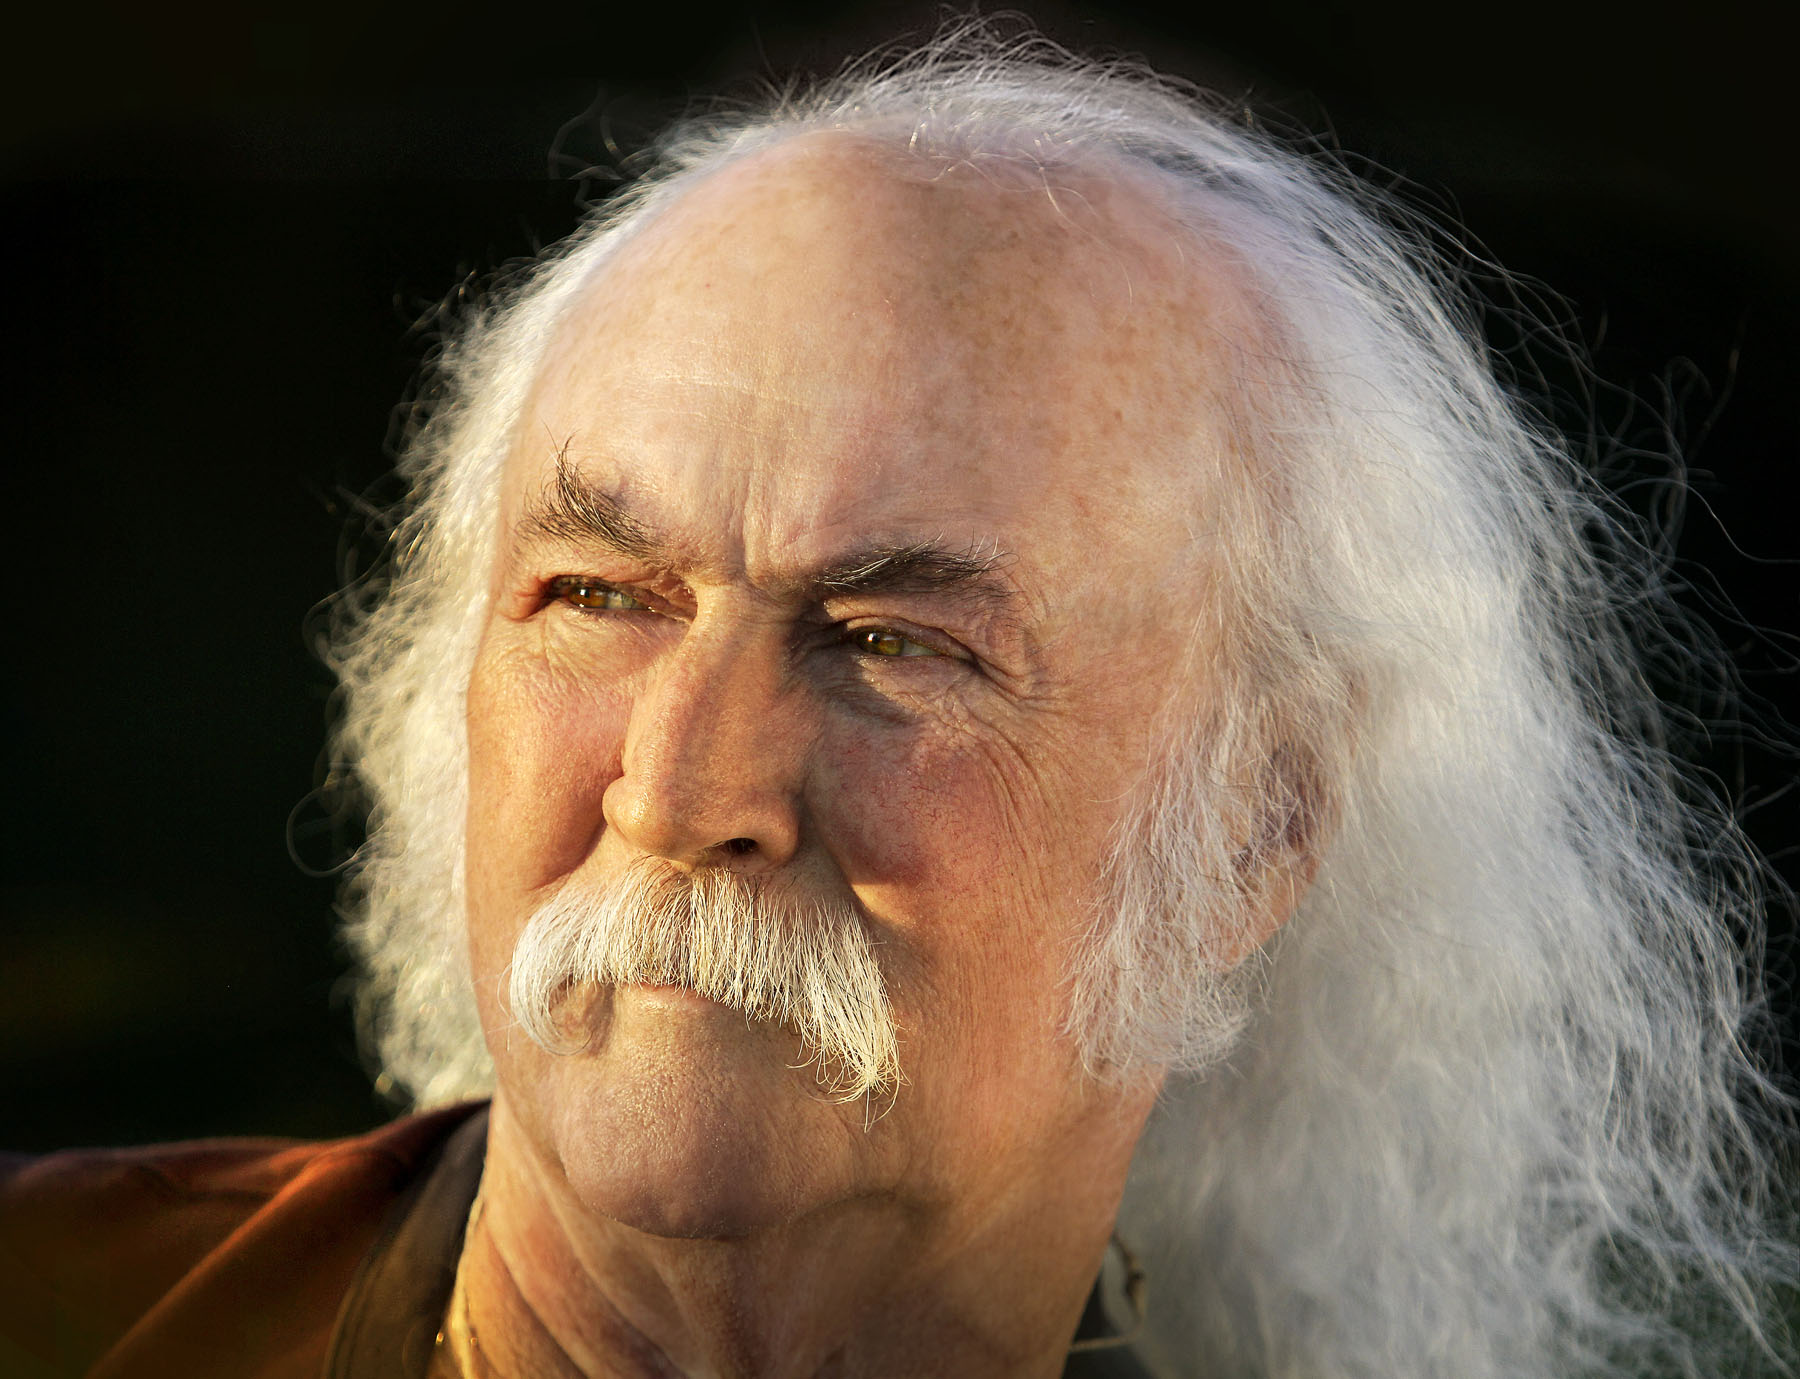 Singer-songwriter David Crosby will perform Aug. 21 at Musikfest Cafe in Bethlehem (Courtesy Photo)